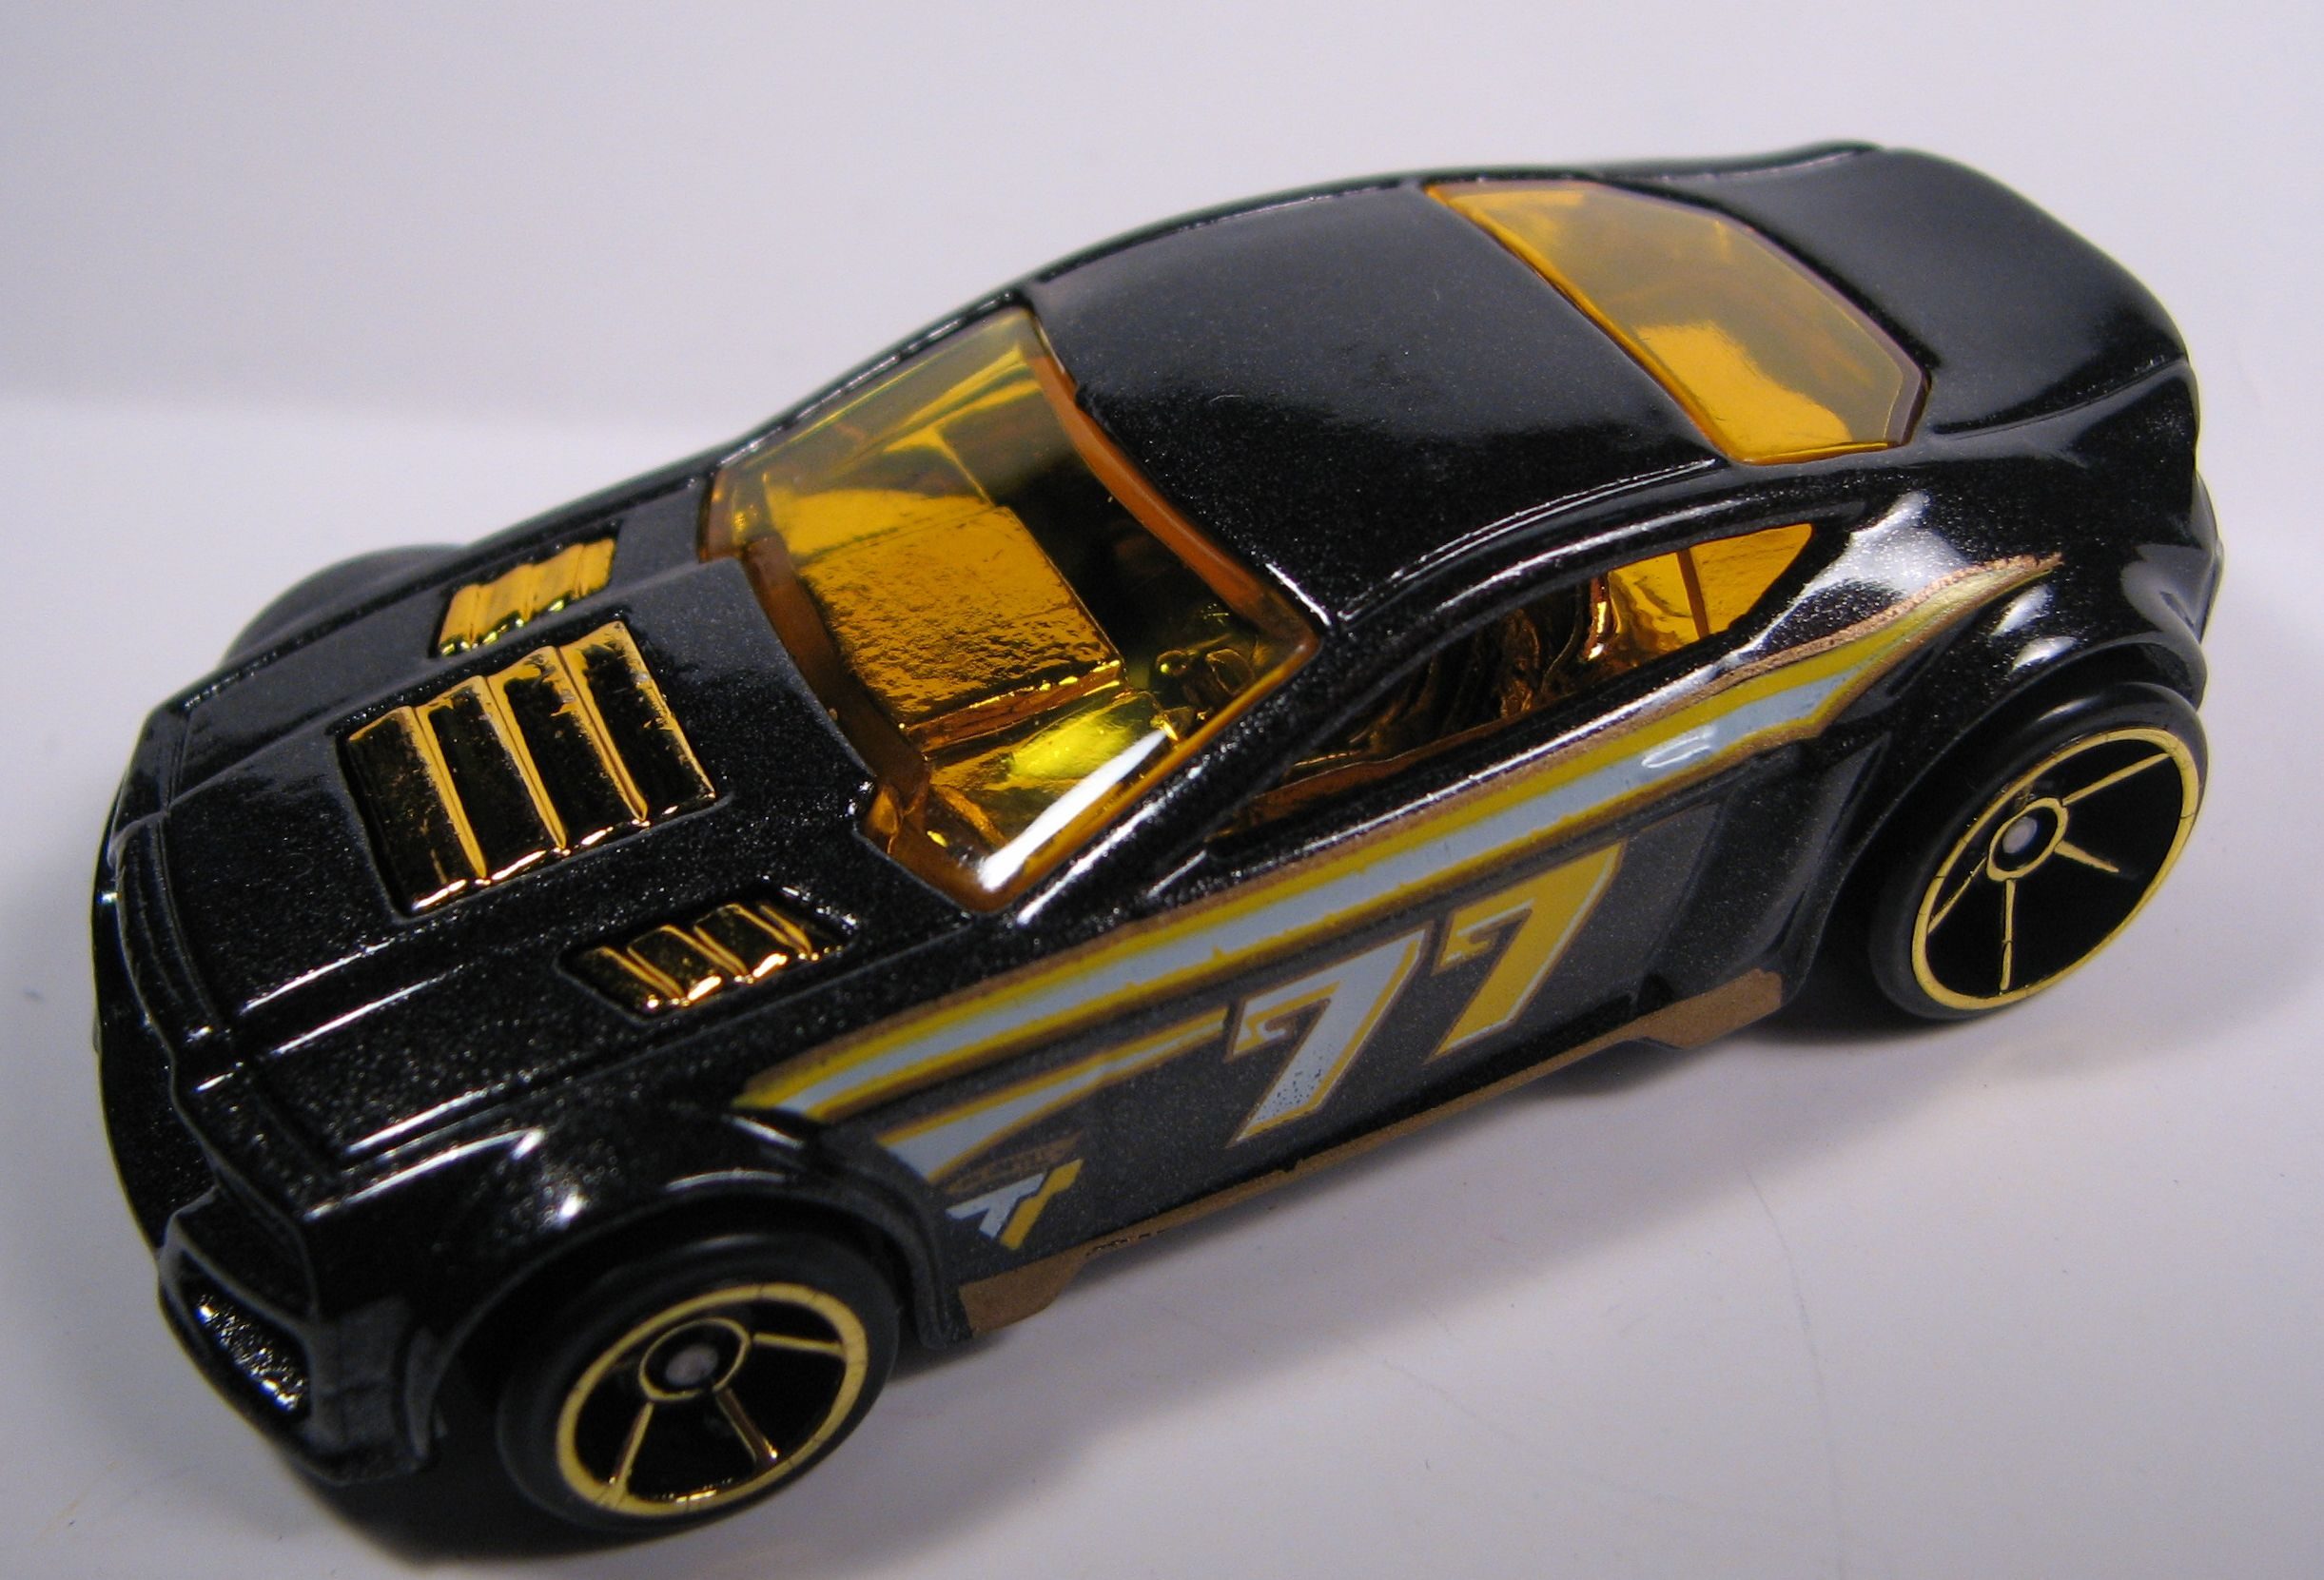 2015 Hot Wheels Multi Pack Exclusive Torque Screw